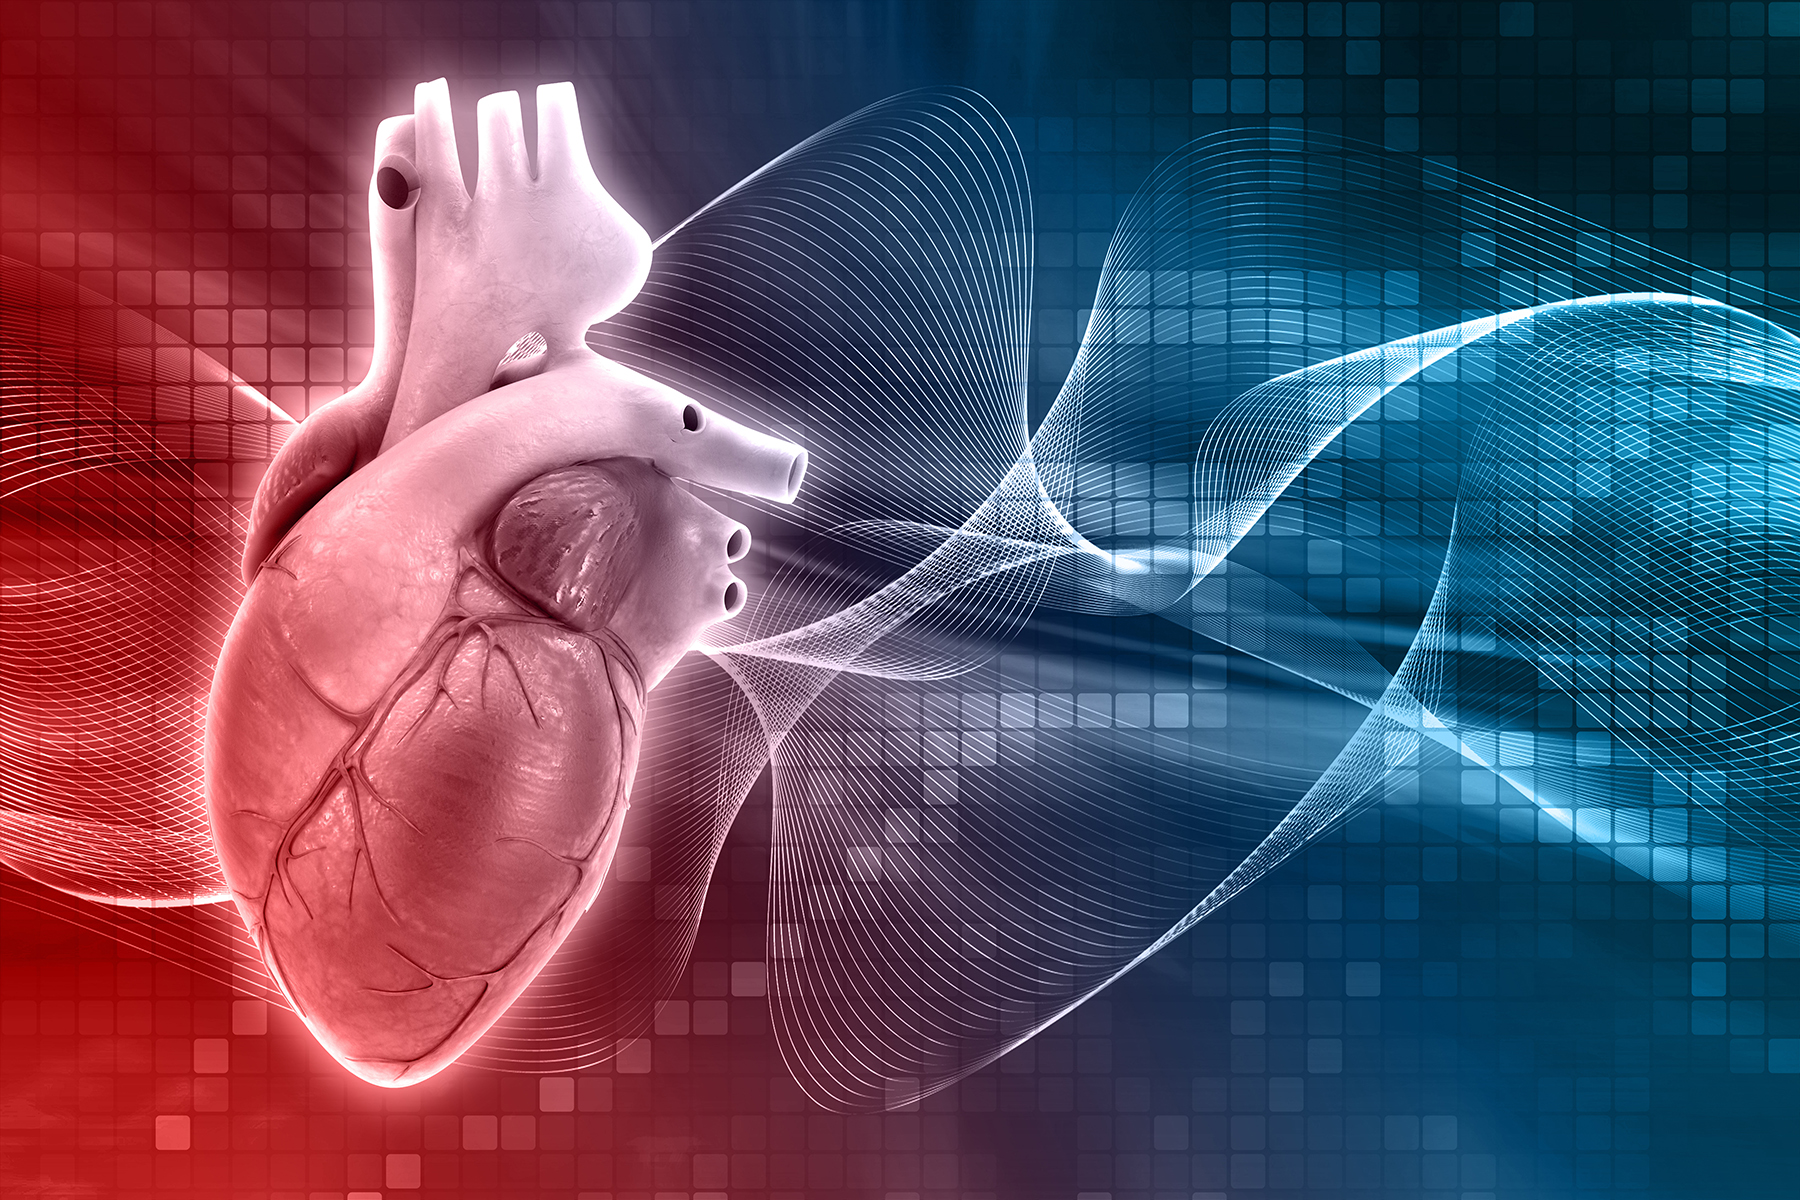 Novel medical devices for early detection of cardiovascular disease